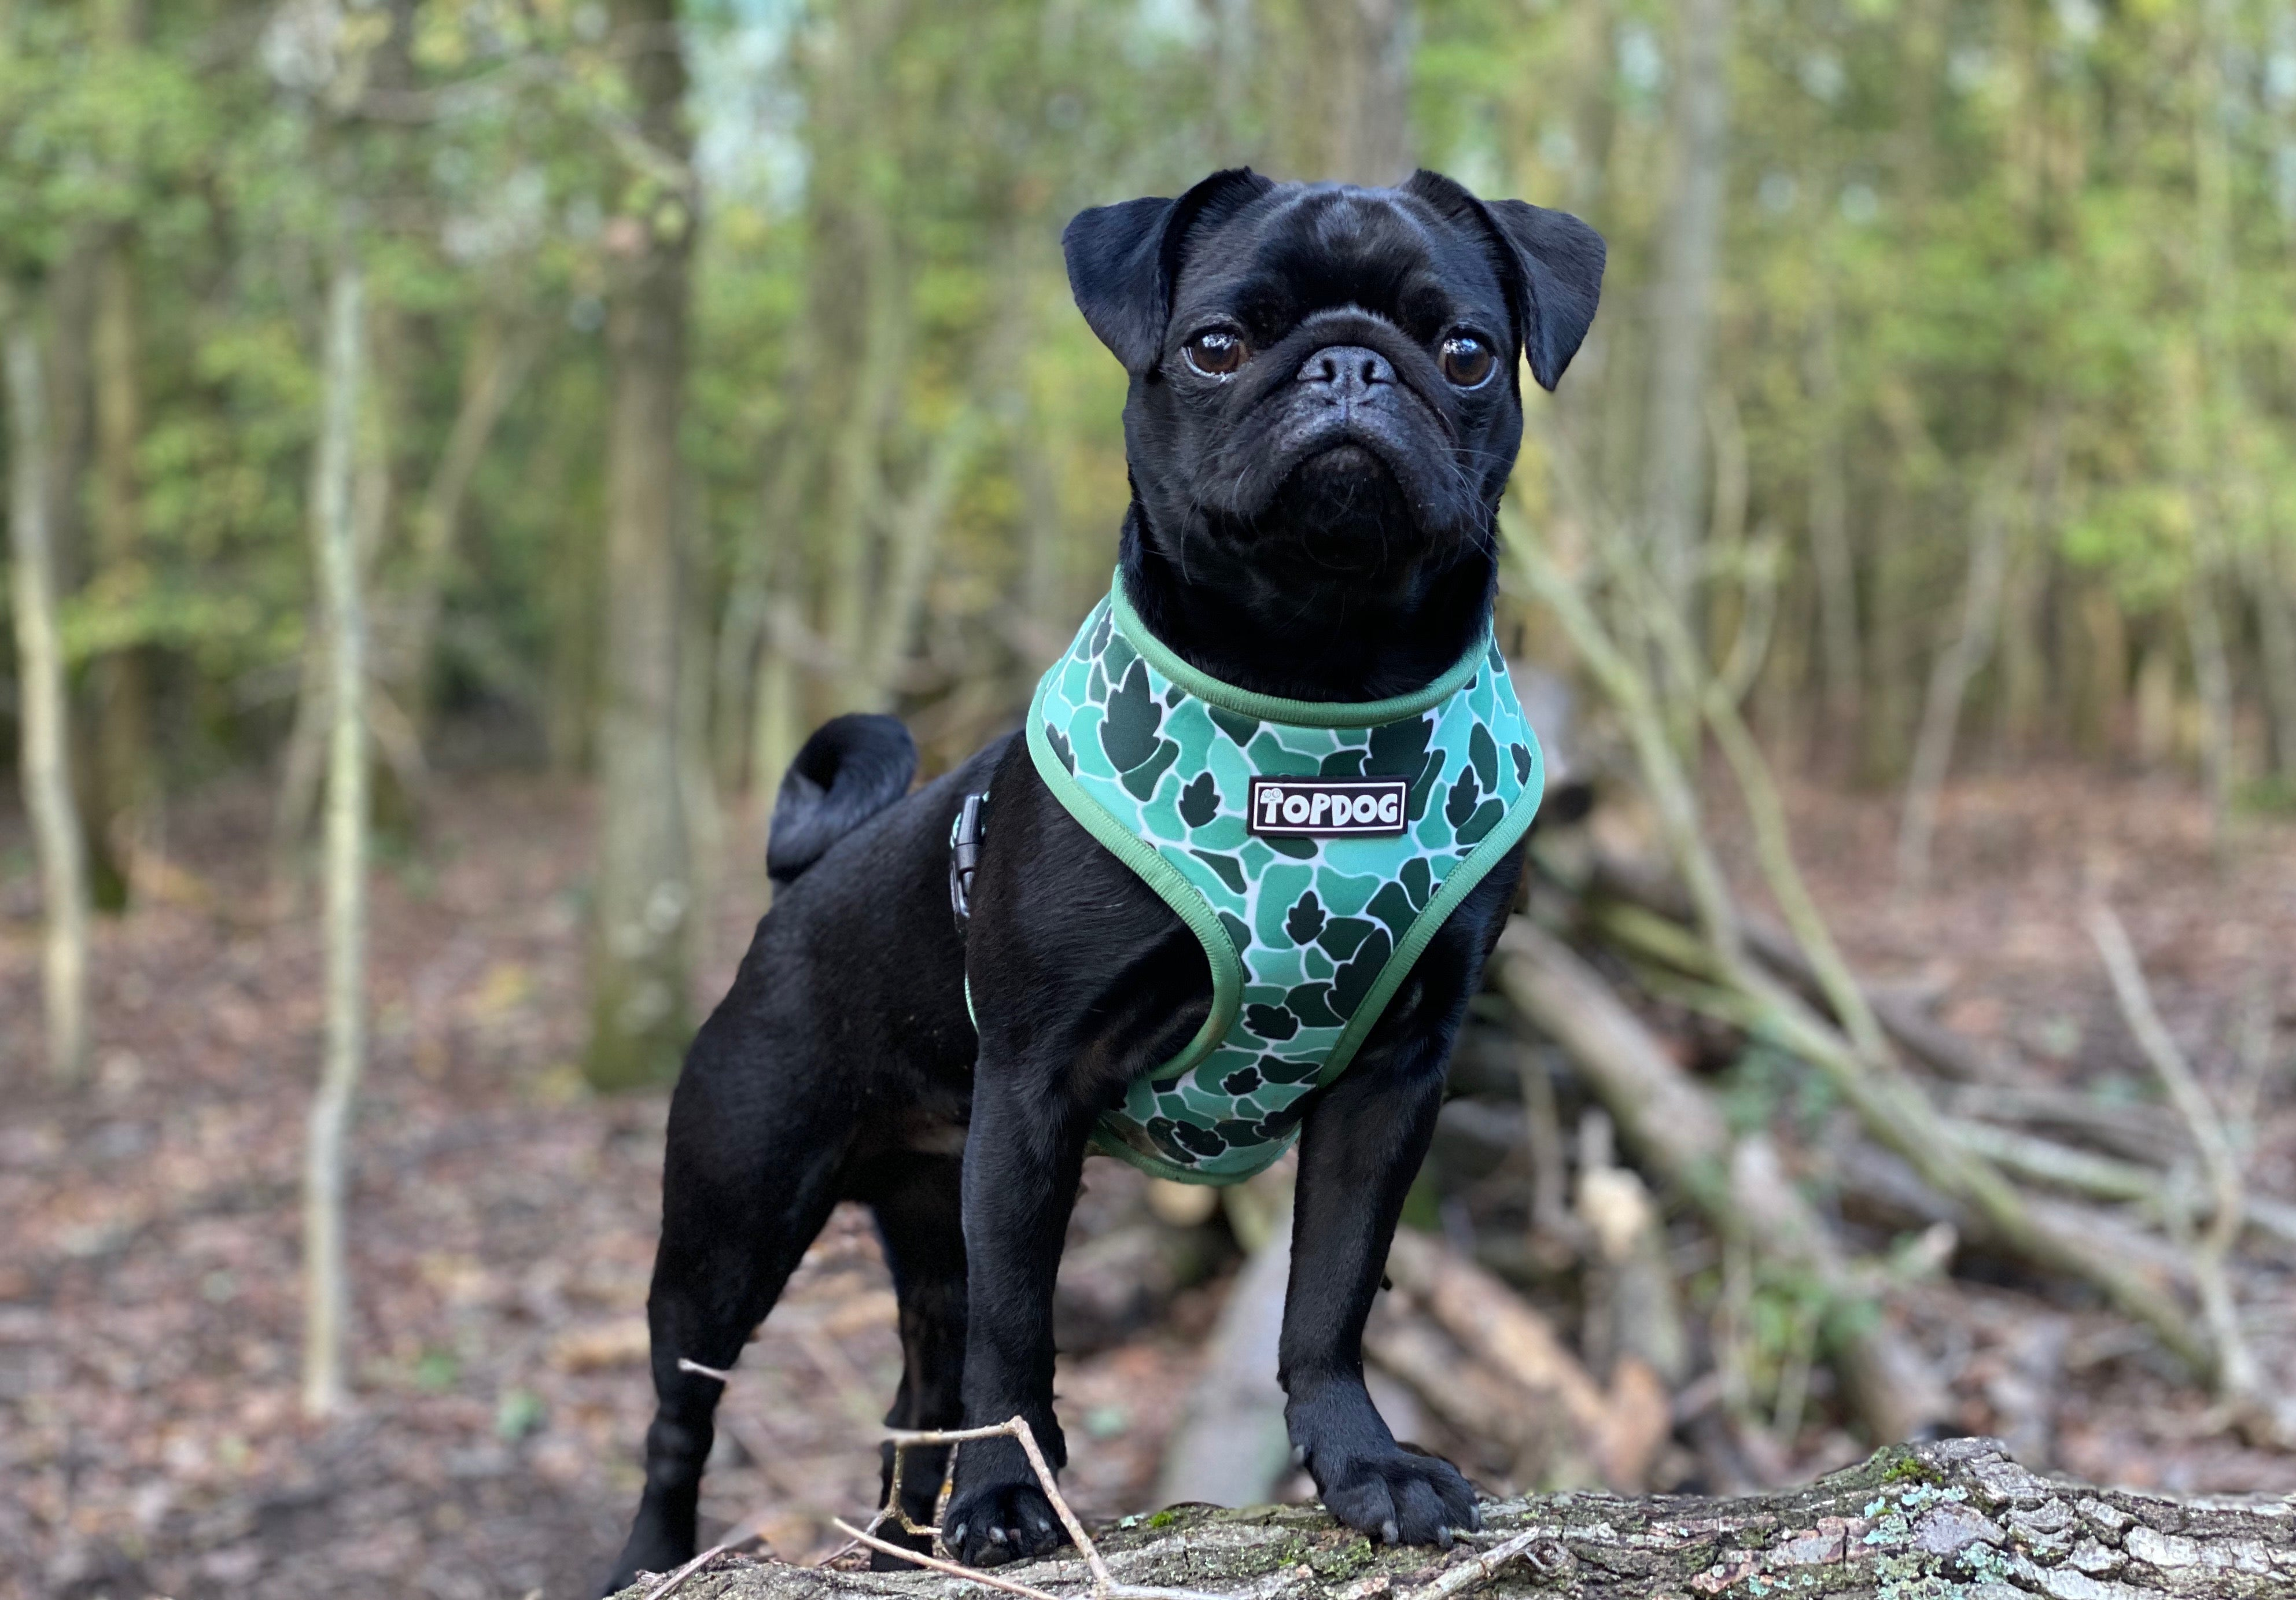 Reversible Dog Harness - BeLeaf IN YOURSELF - TopDog Harnesses